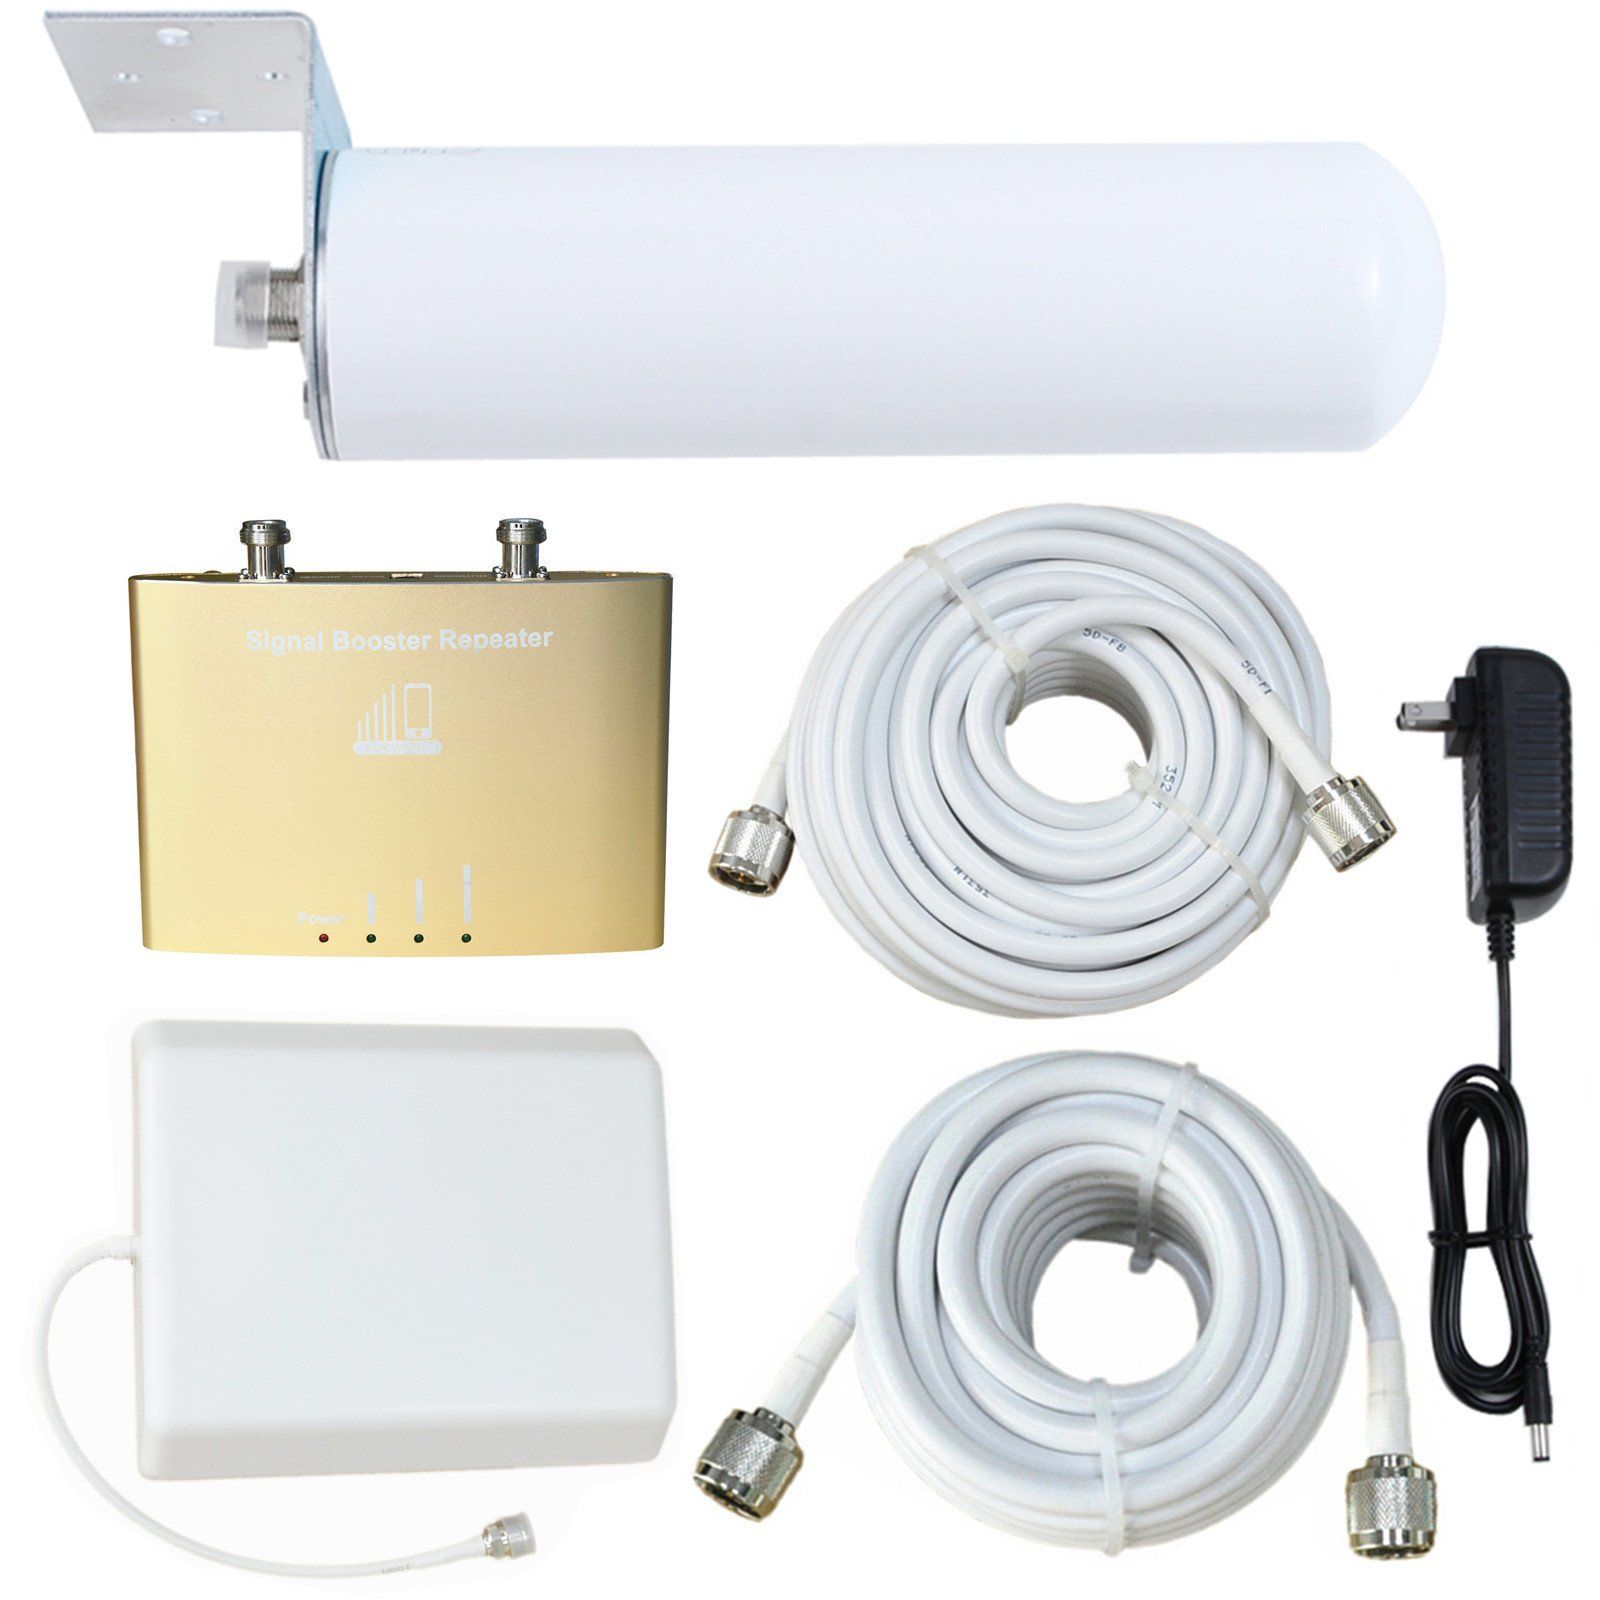 4G Mobile Signal Amplifier - Cell Phone Signal Booster Band 13 Verizon 700MHz 4G LTE Mingcoll Signal Repeater with Indoor Directional Panel Antenna and Outdoor Omnidirectional Tubular Antenna